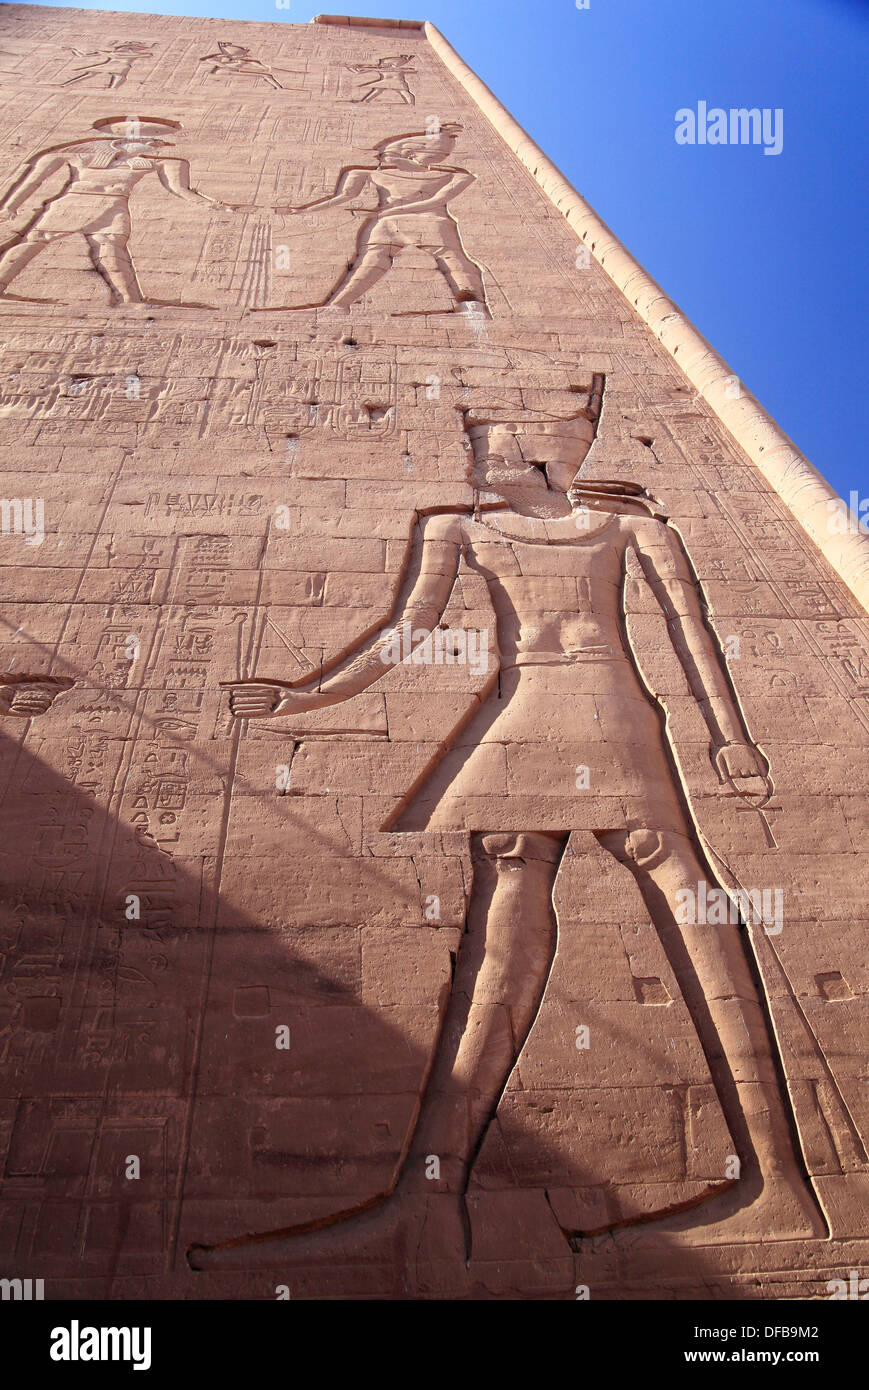 Tipicaly iconography in Edfú temple Egypt - Stock Image